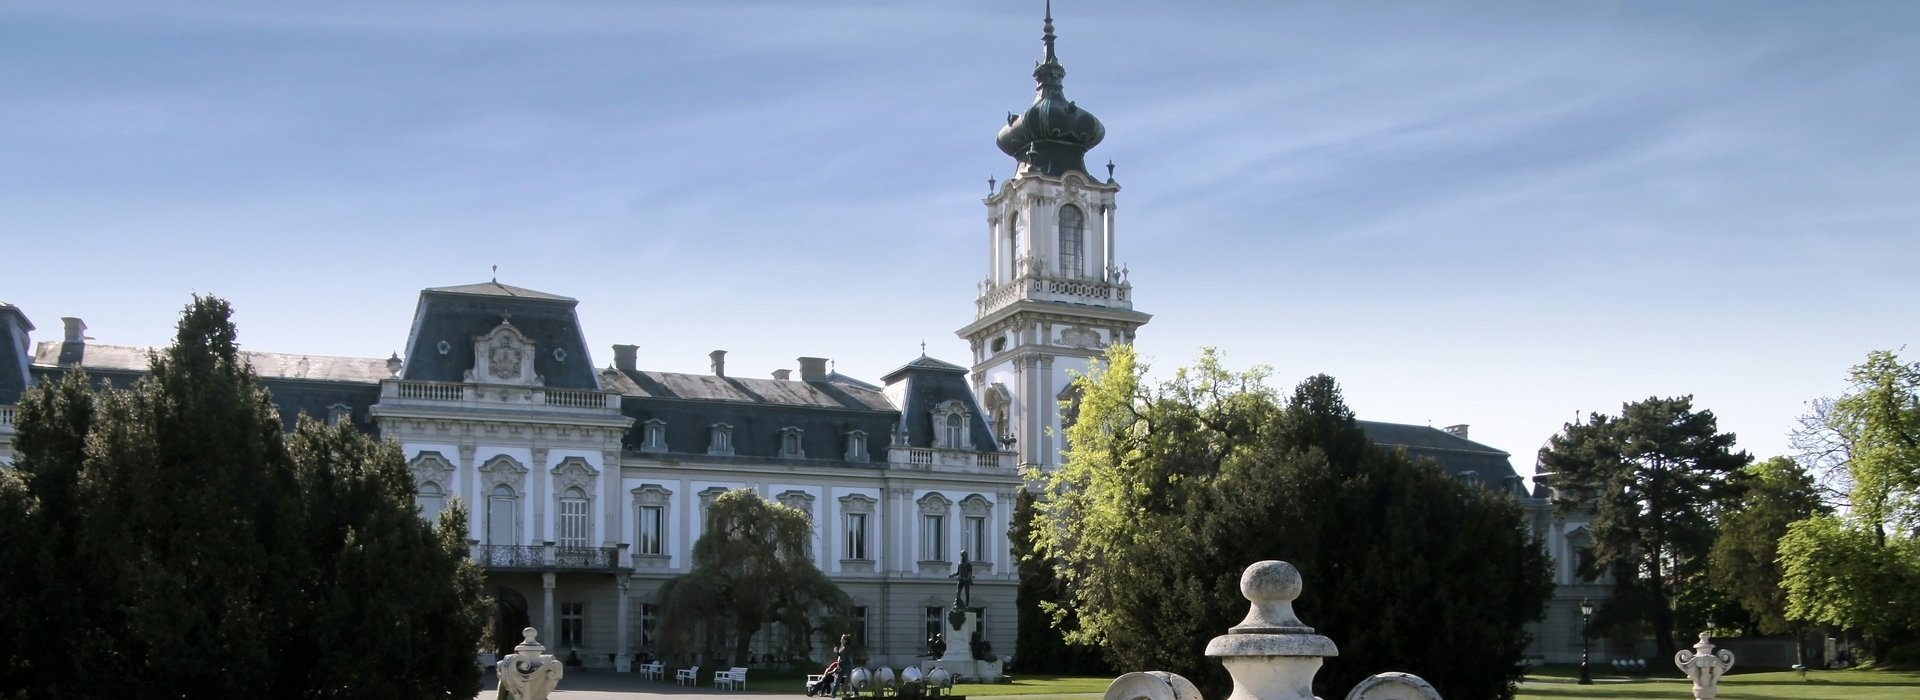 Keszthely Kultra  Keszthely Kulturlis lete